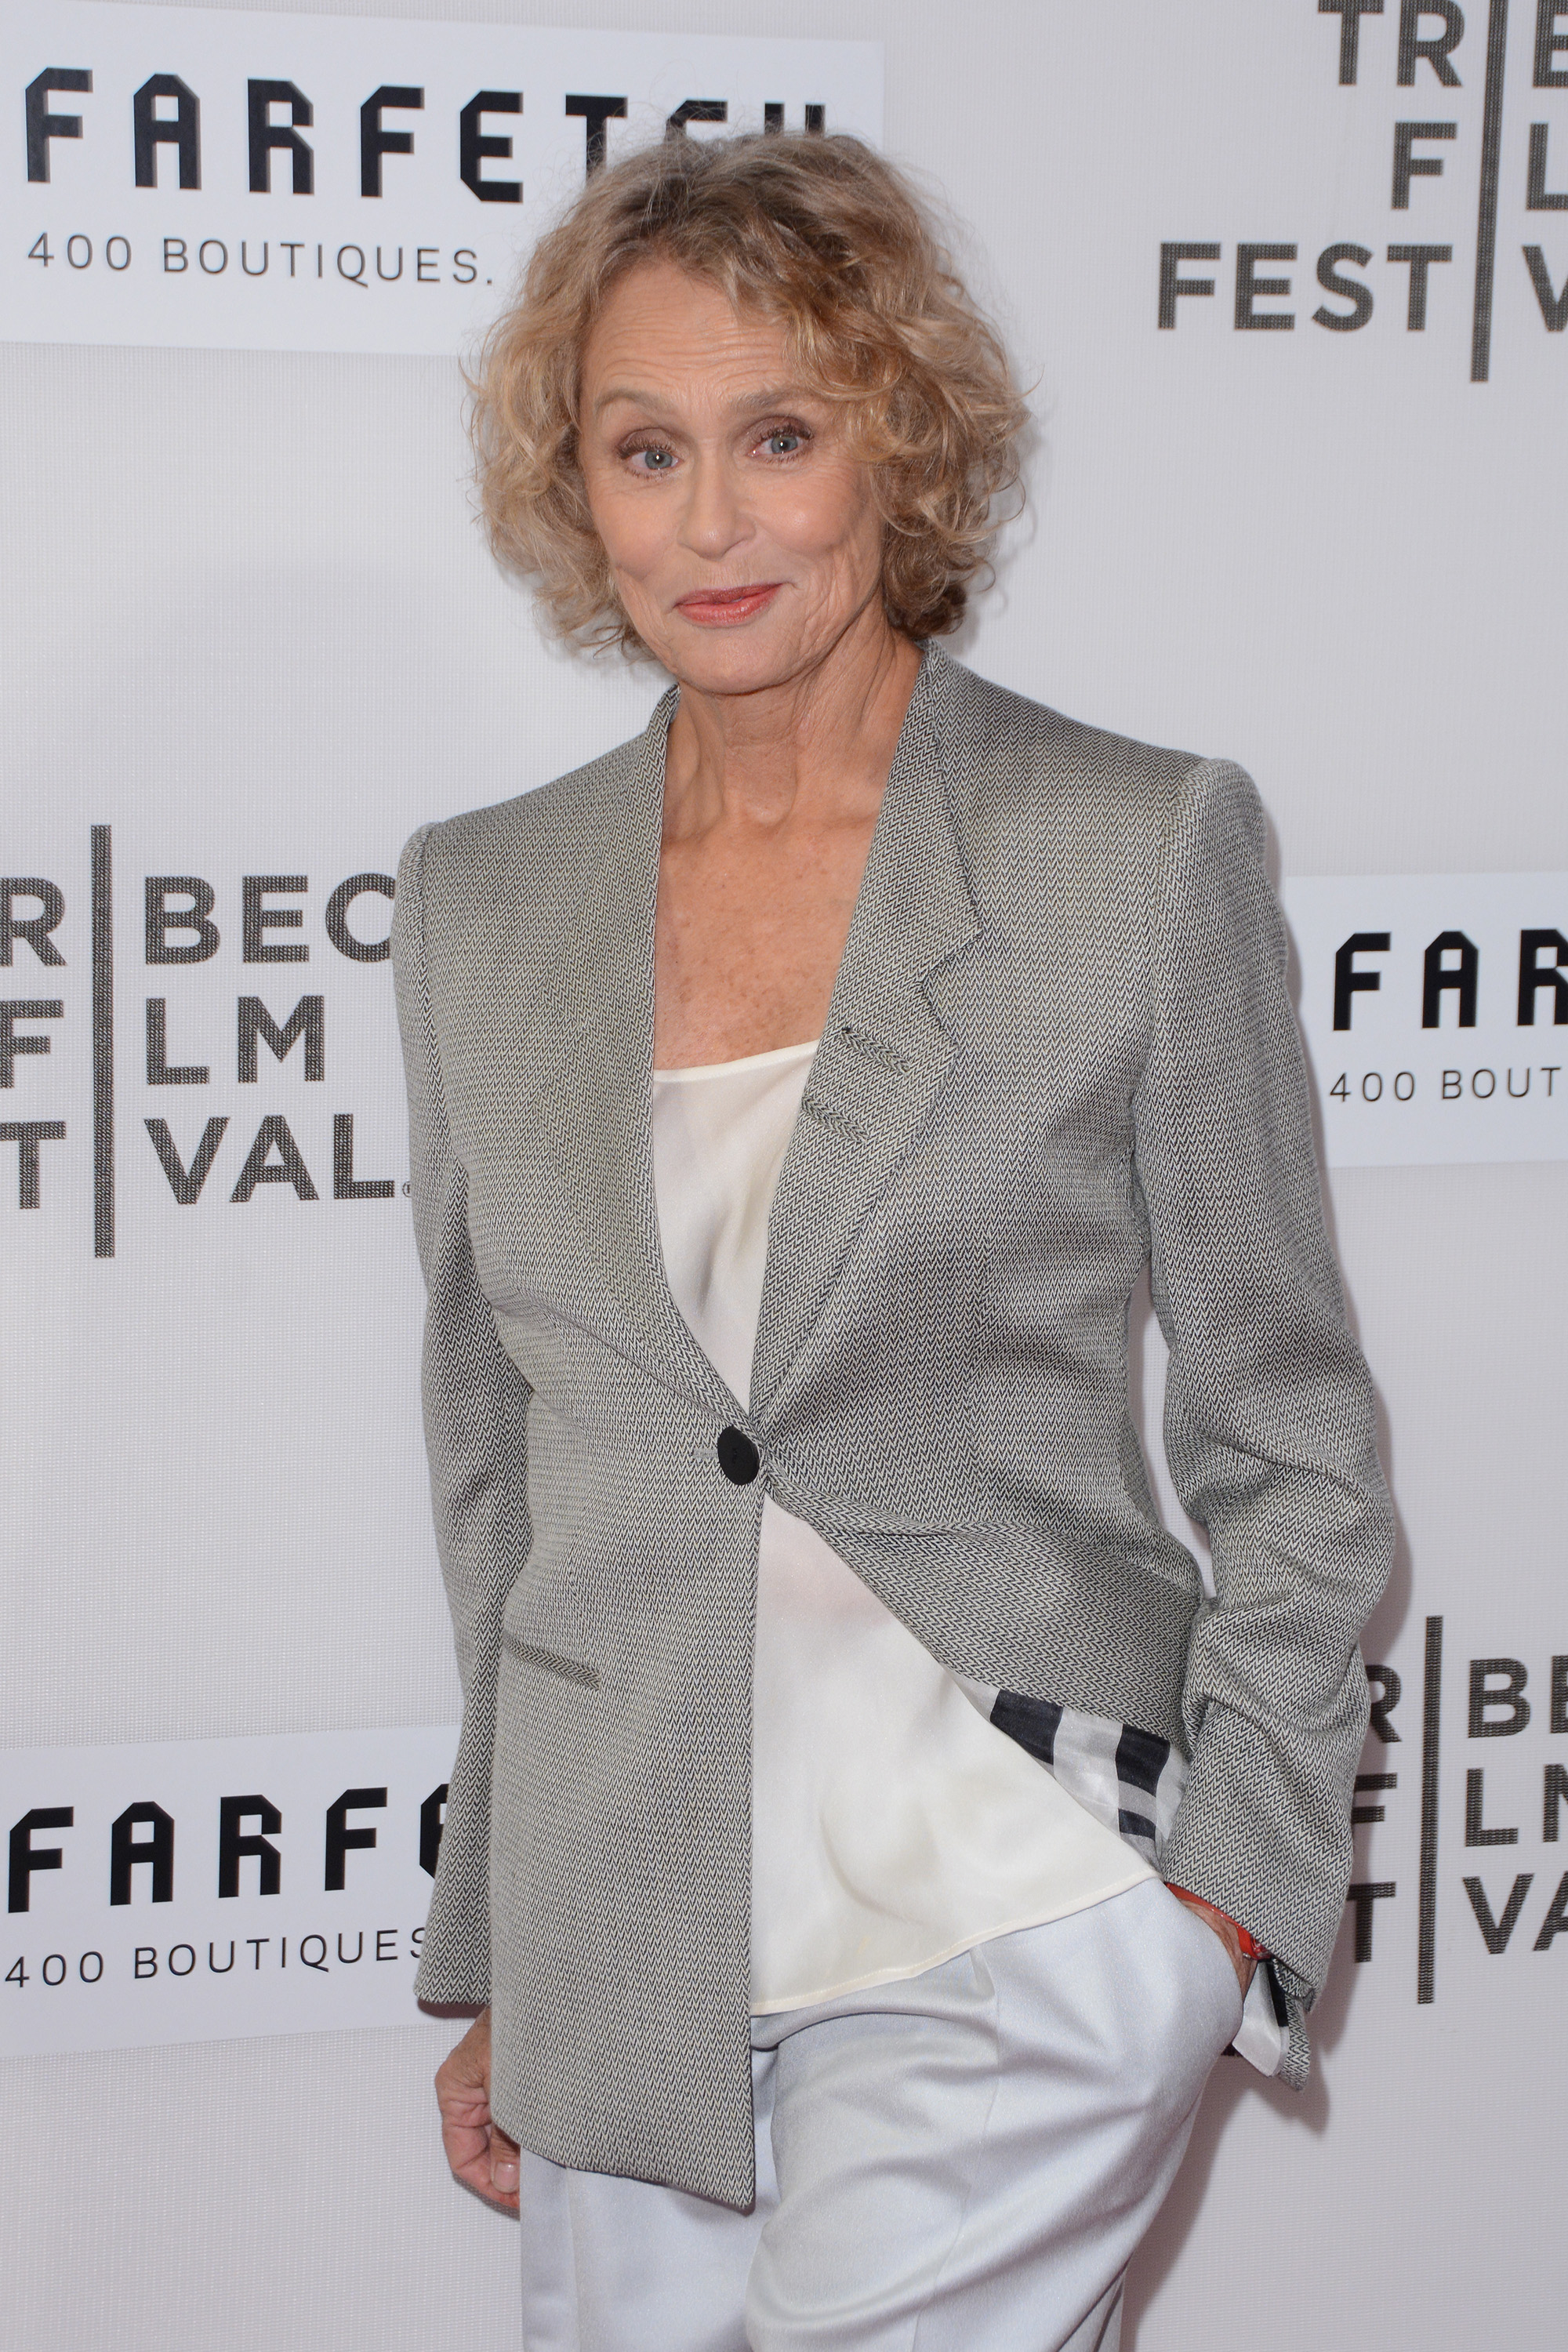 "2016 Tribeca Film Festival  - ""The First Monday In May"" World Premiere  - Red Carpet Arrivals                                    Featuring: Lauren Hutton                  Where: New York, New York, United States                  When: 13 Apr 2016                  Credit: Ivan Nikolov/WENN.com"